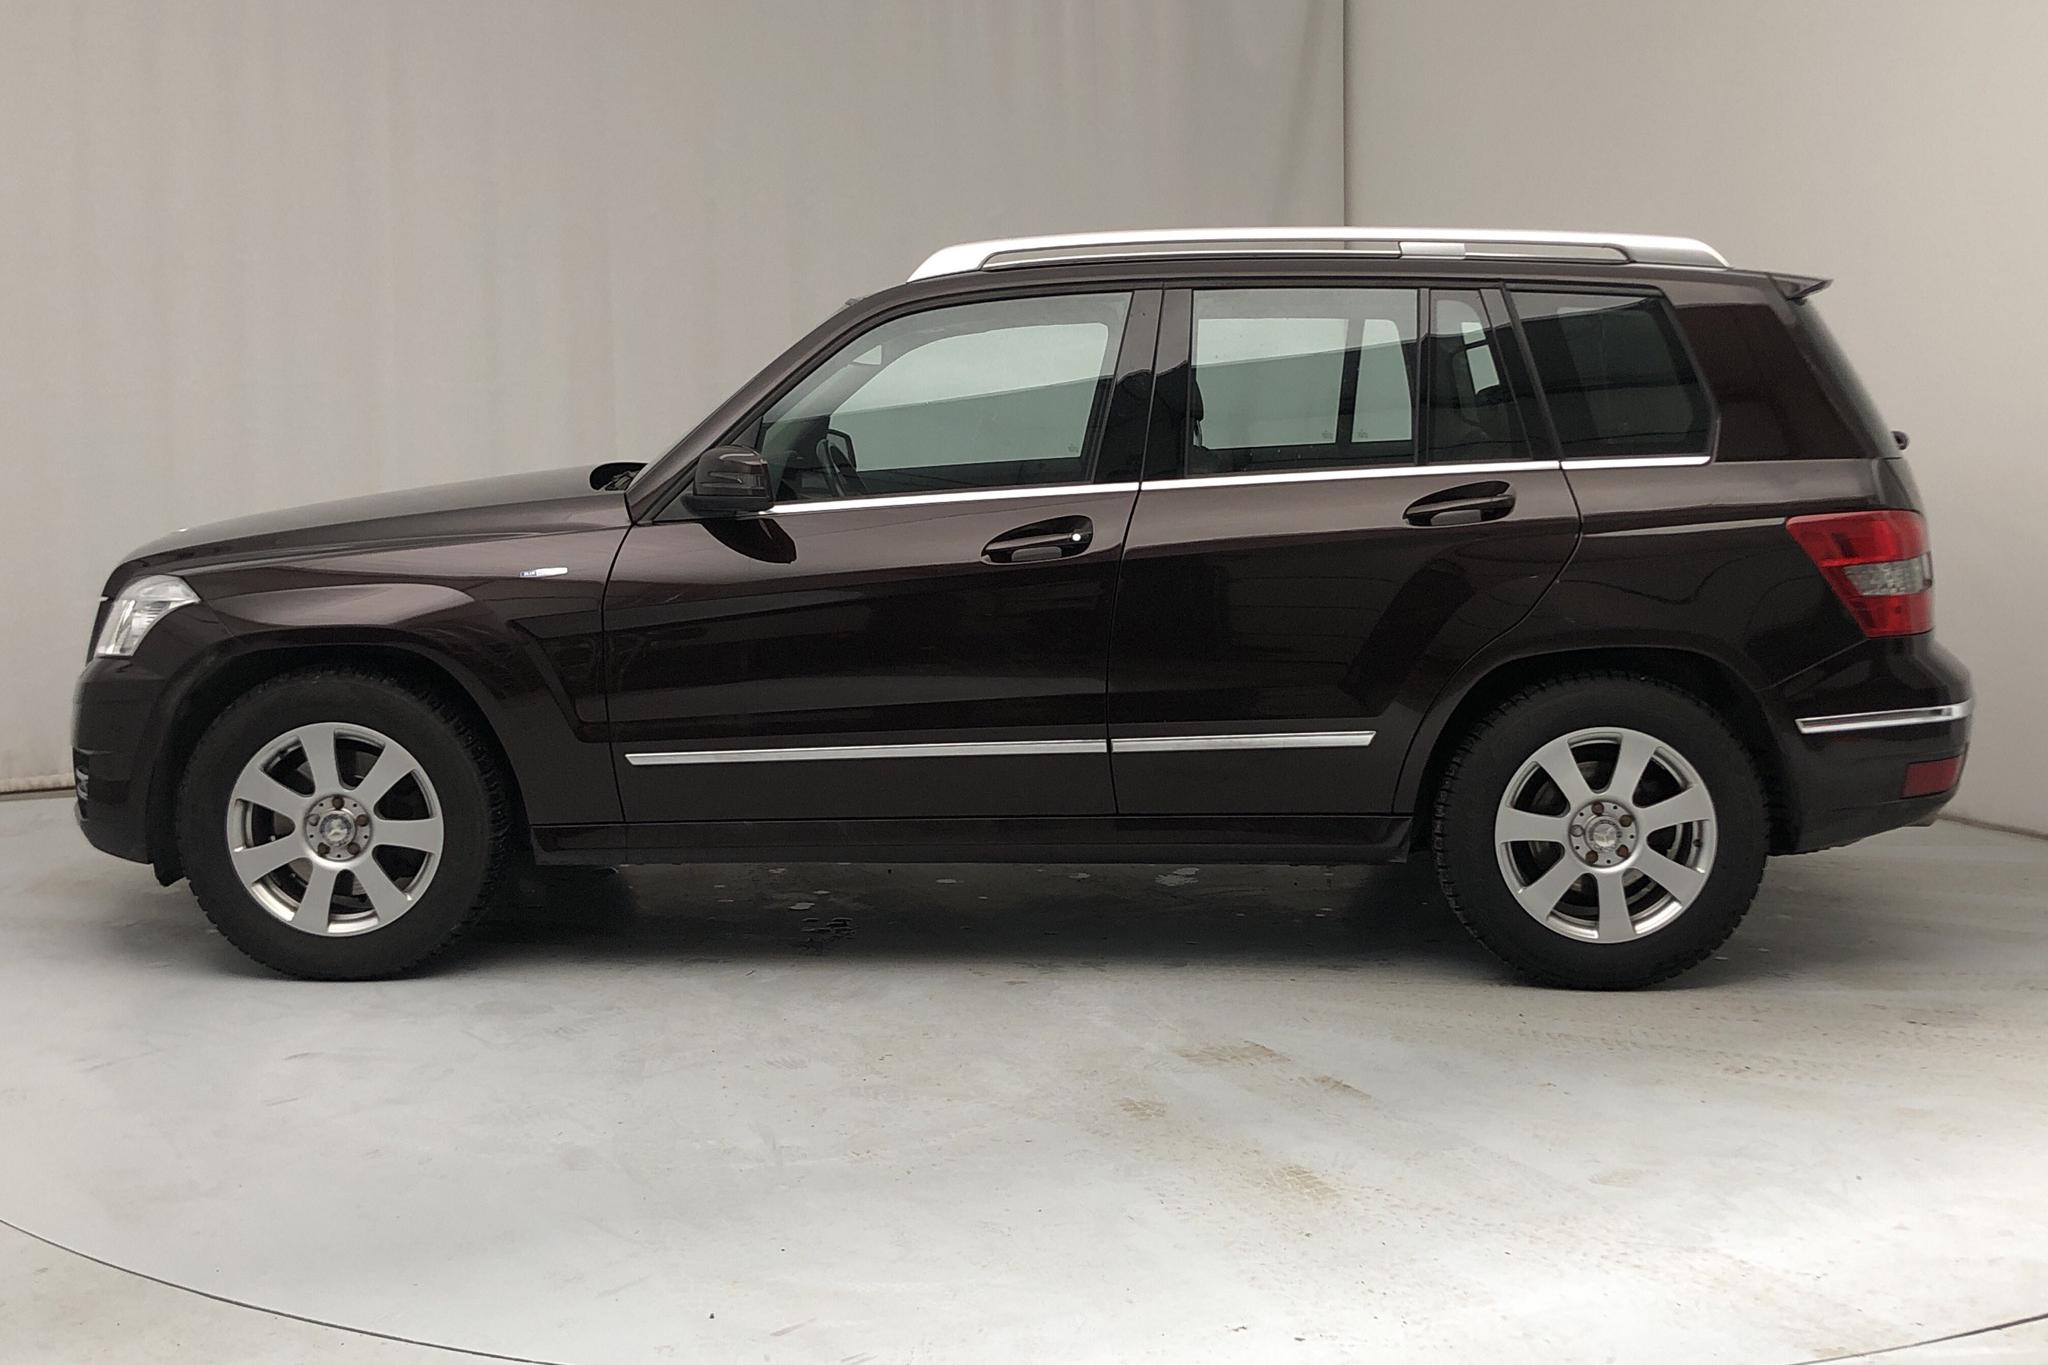 Mercedes GLK 220 CDI BlueEFFICIENCY 4MATIC (170hk) - 135 800 km - Automatic - Dark Brown - 2011